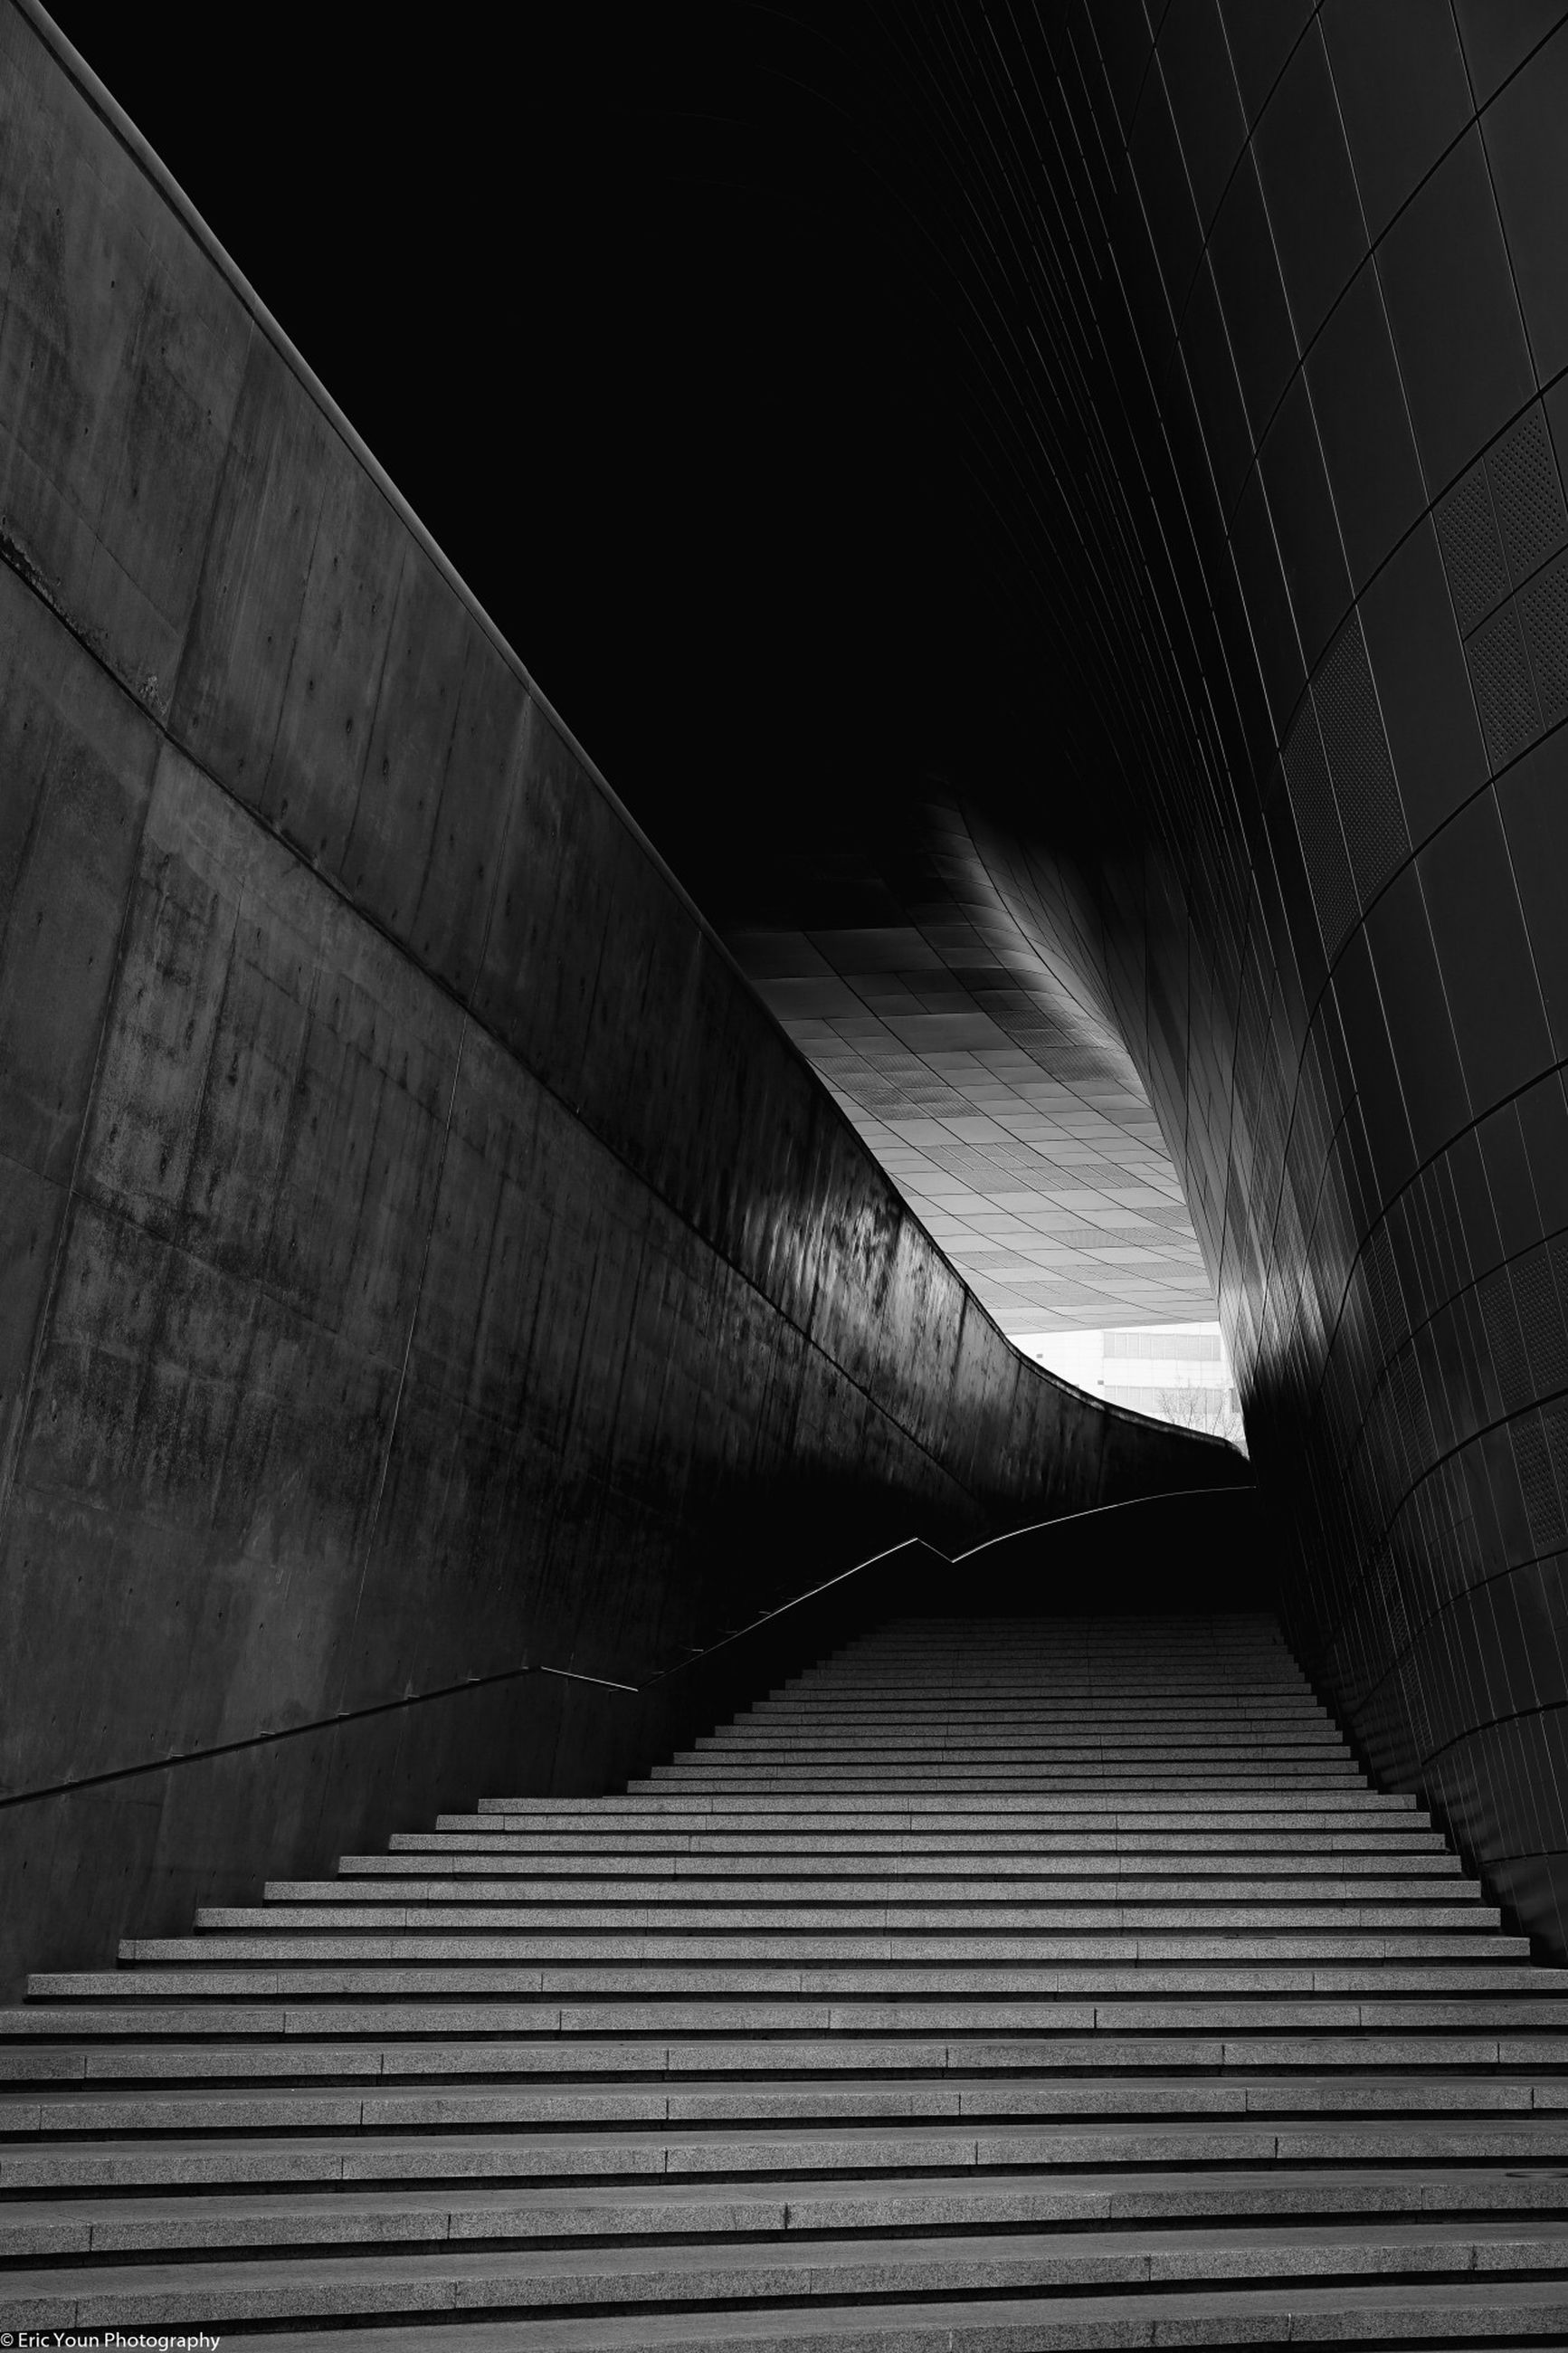 Amazing Architecture EyeEm Best Shots South Korea Sonyphotography Sonya7II Eye4photography  Seoul Architecture Blackandwhite Photography Architecture_bw This picture was taken in Seoul at the Dongdaemun Design Plaza.